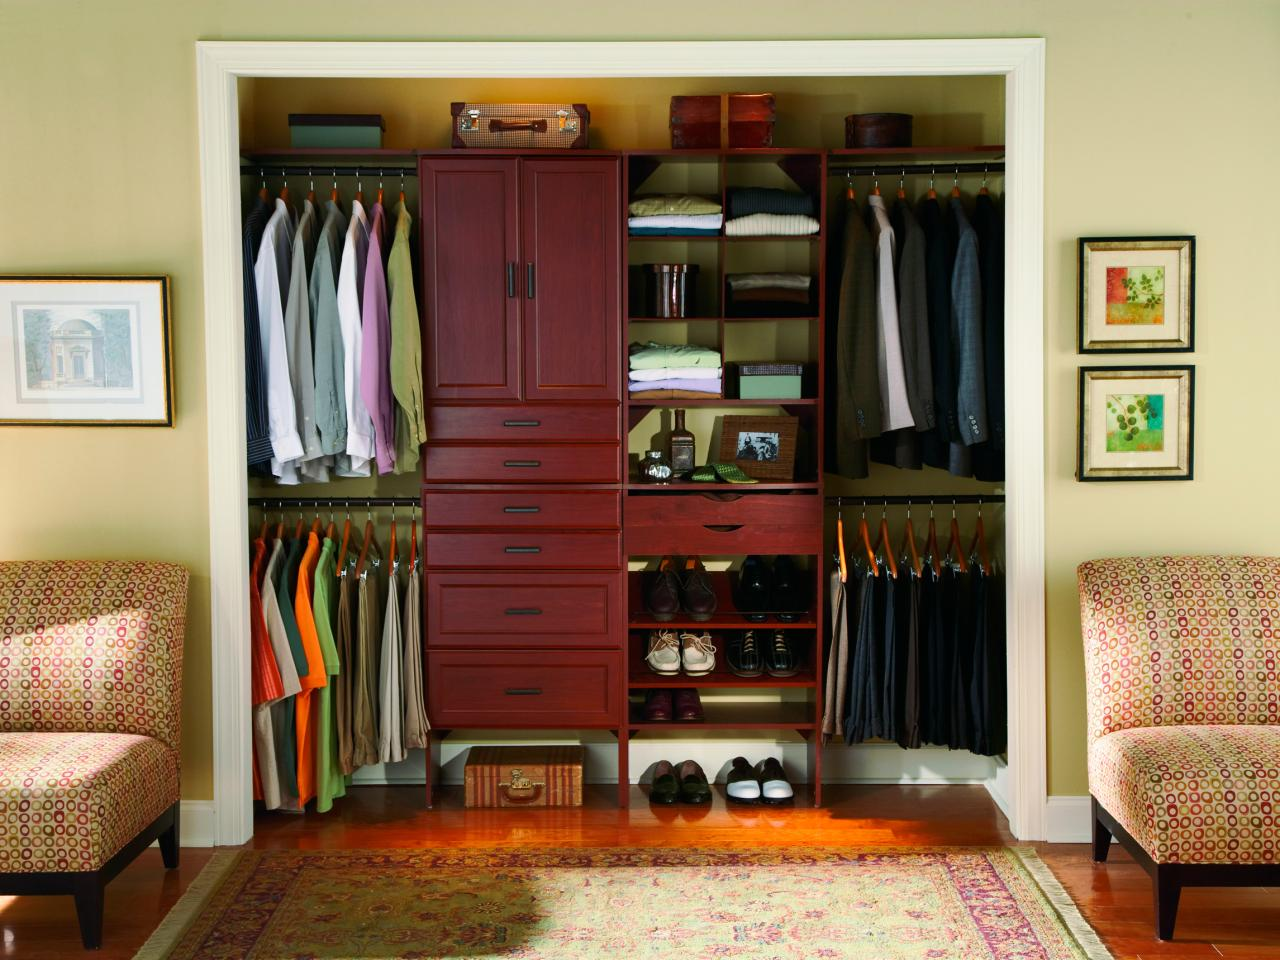 Add Small Closet Ideas for Old Fashioned Bedroom with Wooden Cabinets and Shoes Shelves